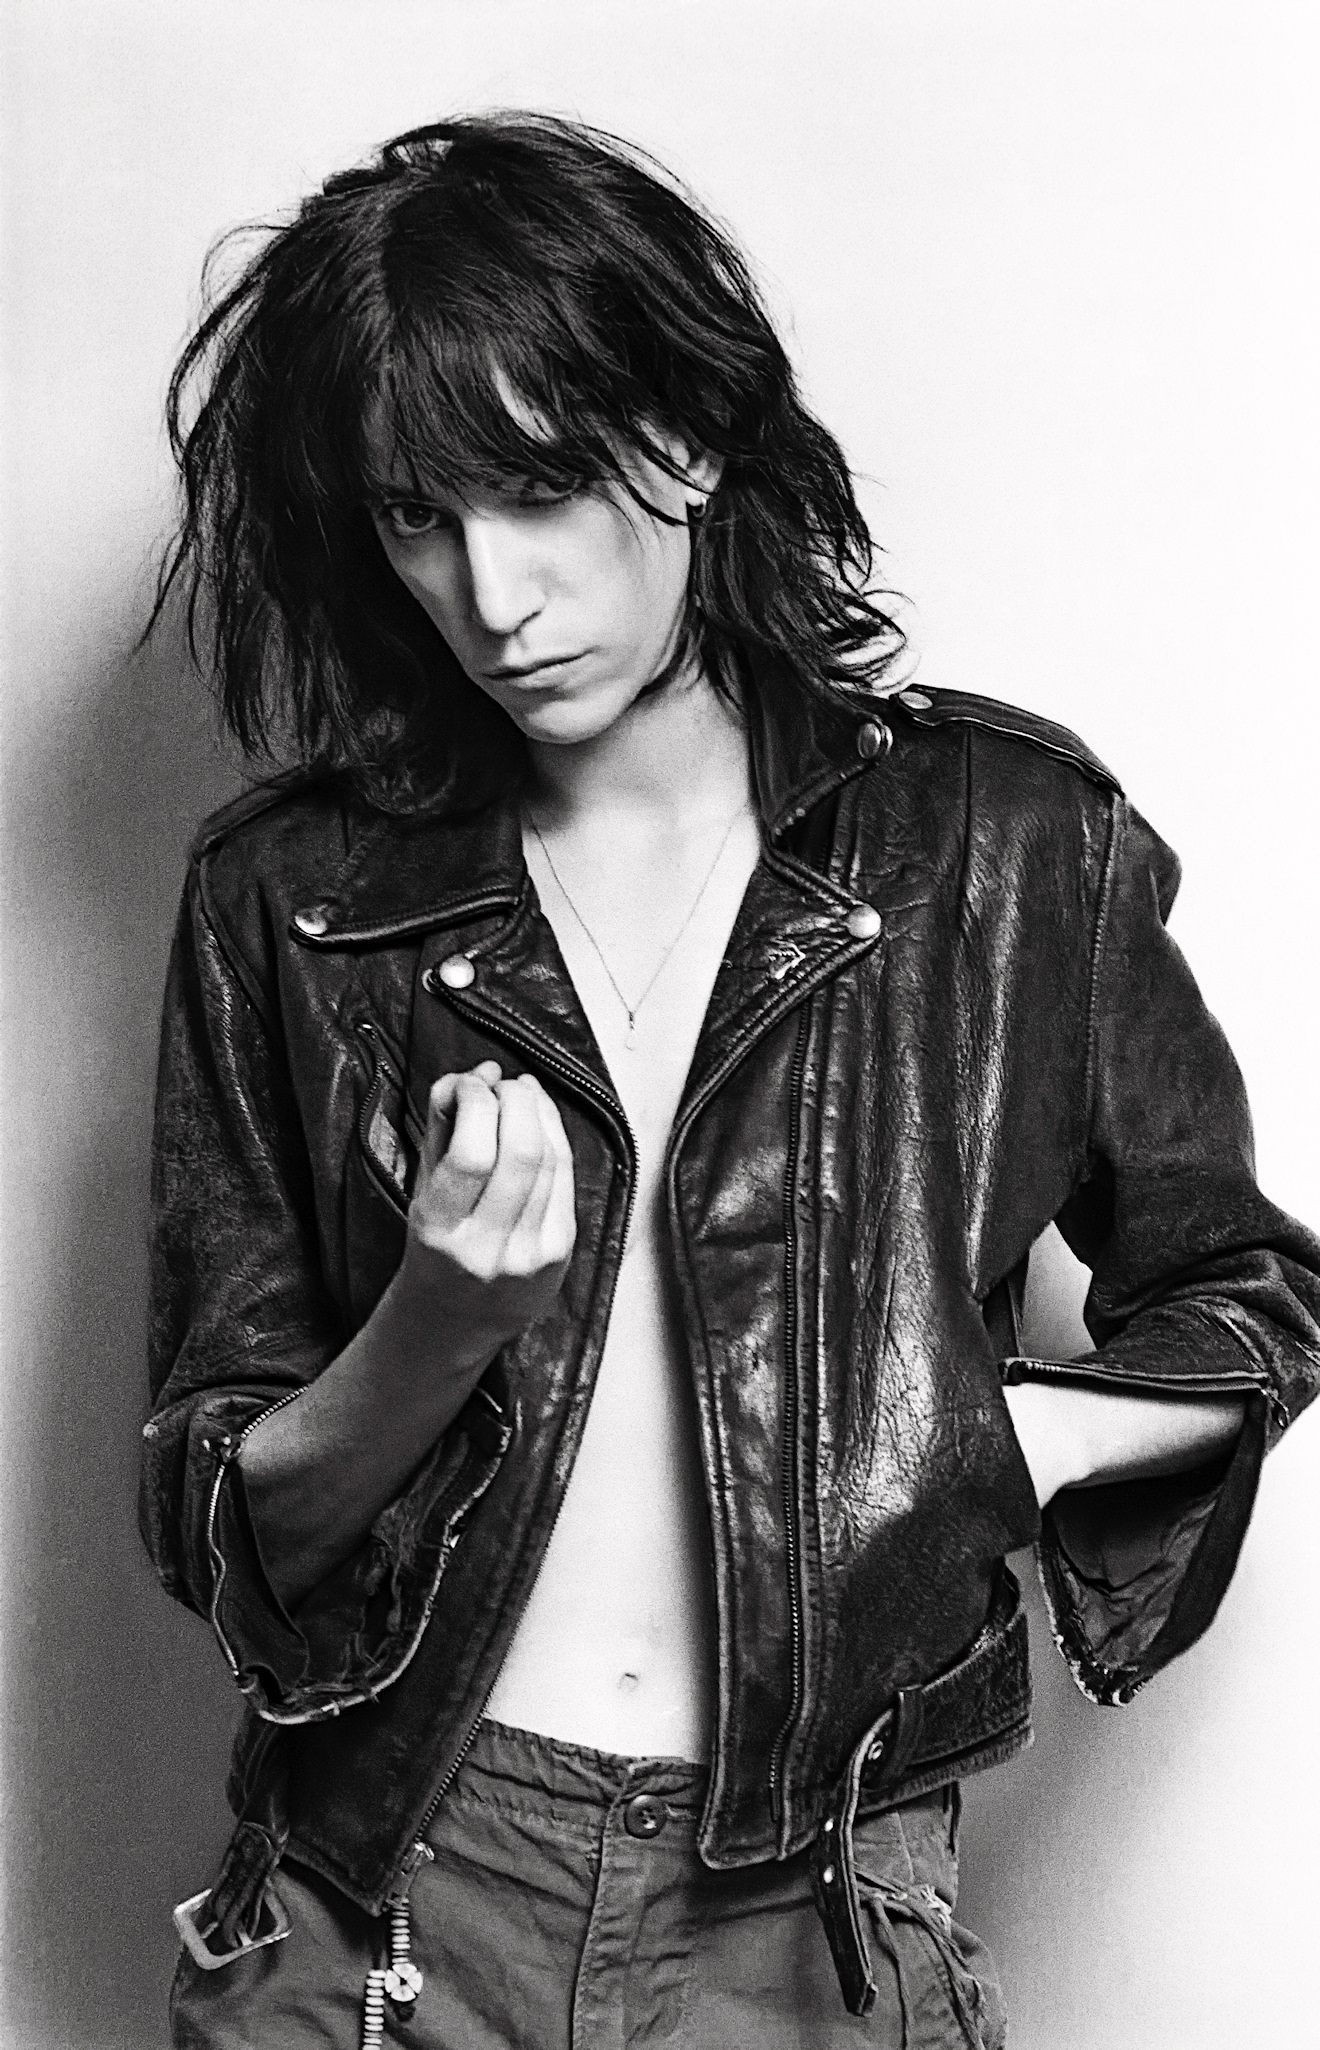 patti-smith-young-leather-jacket.jpg